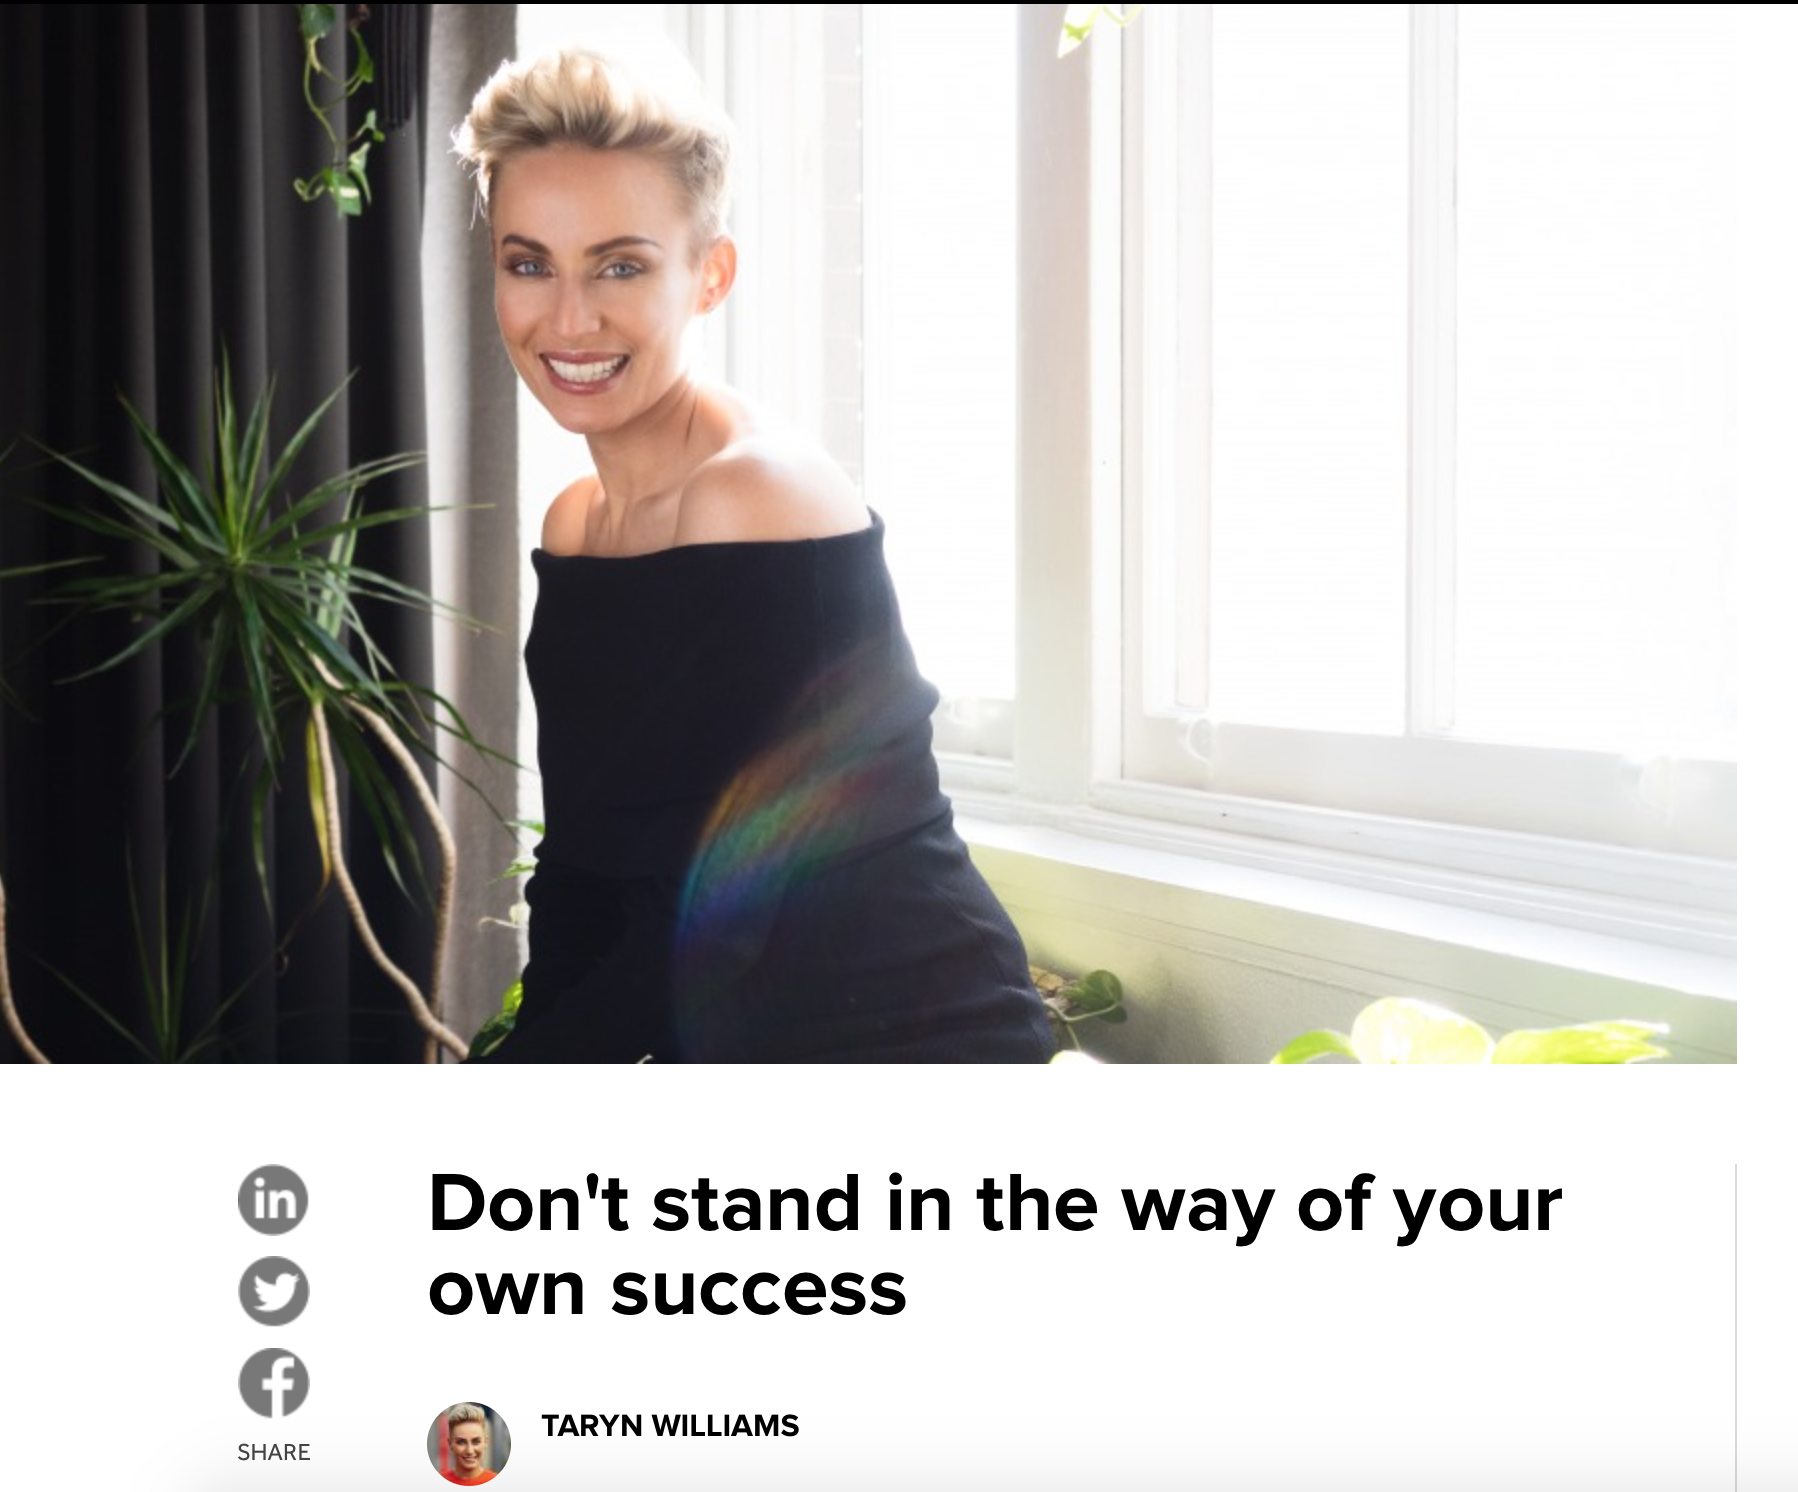 http://www.shortpress.com.au/dont-stand-in-the-way-of-your-own-success